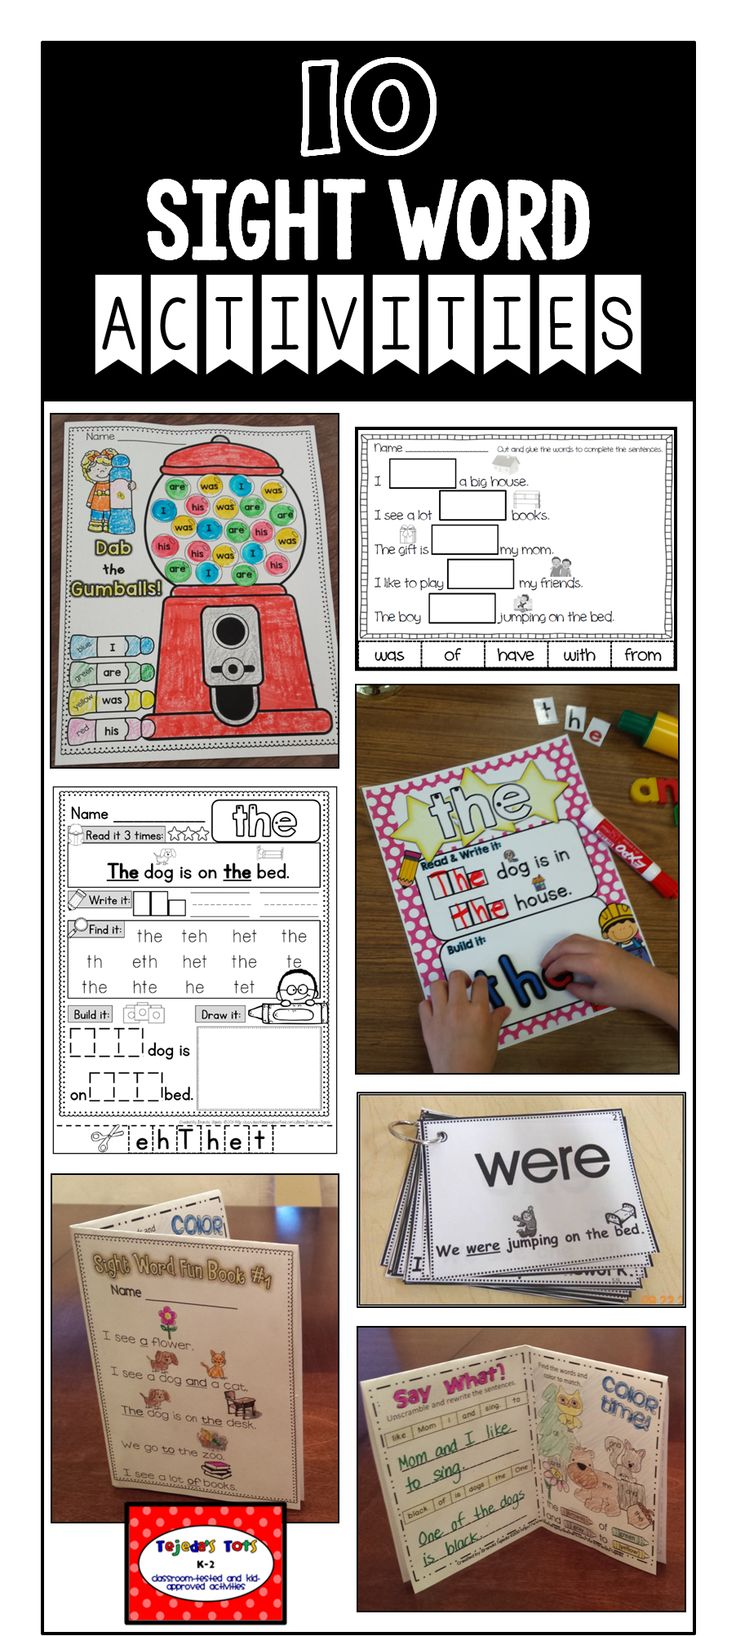 10 FREE sight word activities- sample of my Ultimate Sight Word Growing Bundle: Picture-supported Cards, Sight Word Books, Sight Word Practice Pages, Cloze Sheets, Dab the Sight Word & more!